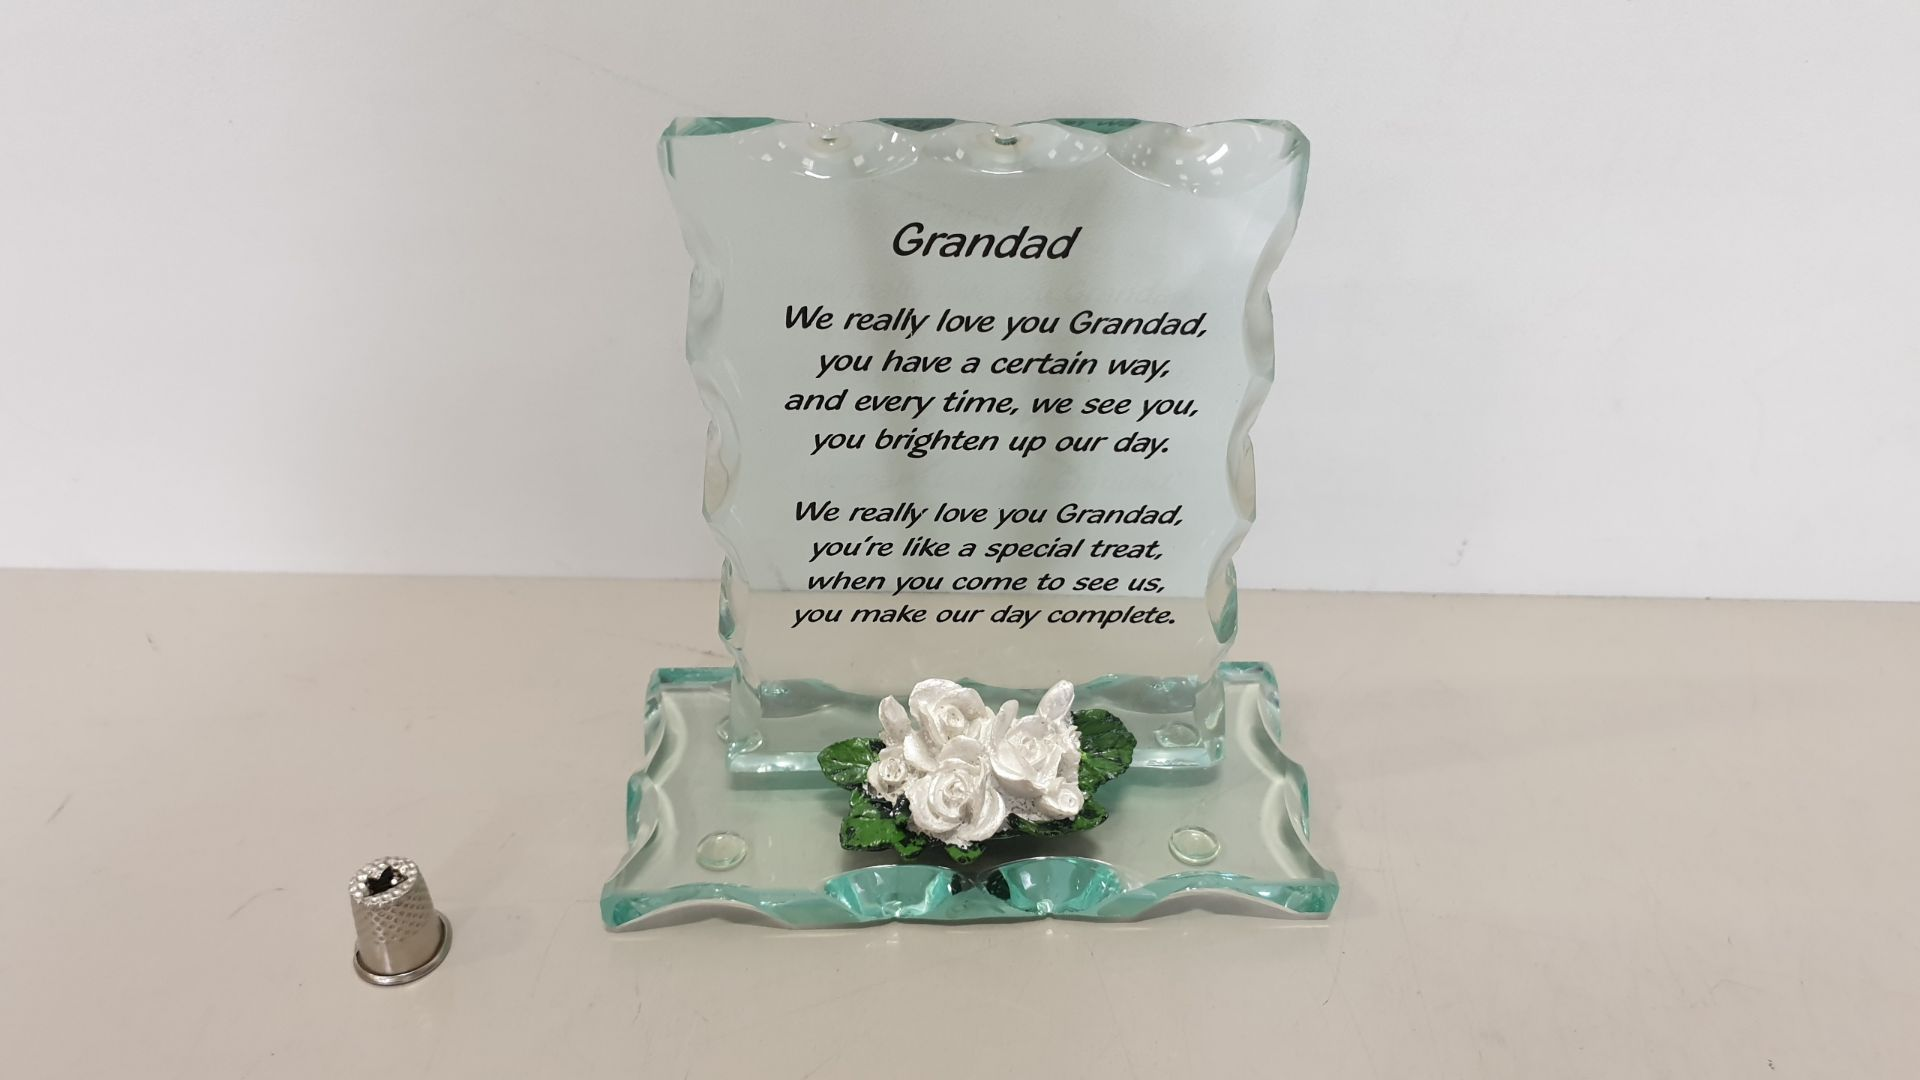 Lot 614 - 168 X BRAND NEW MAYFLOWER COLLECTABLES 'GRANDAD' GLASS MESSAGE - IN 14 BOXES